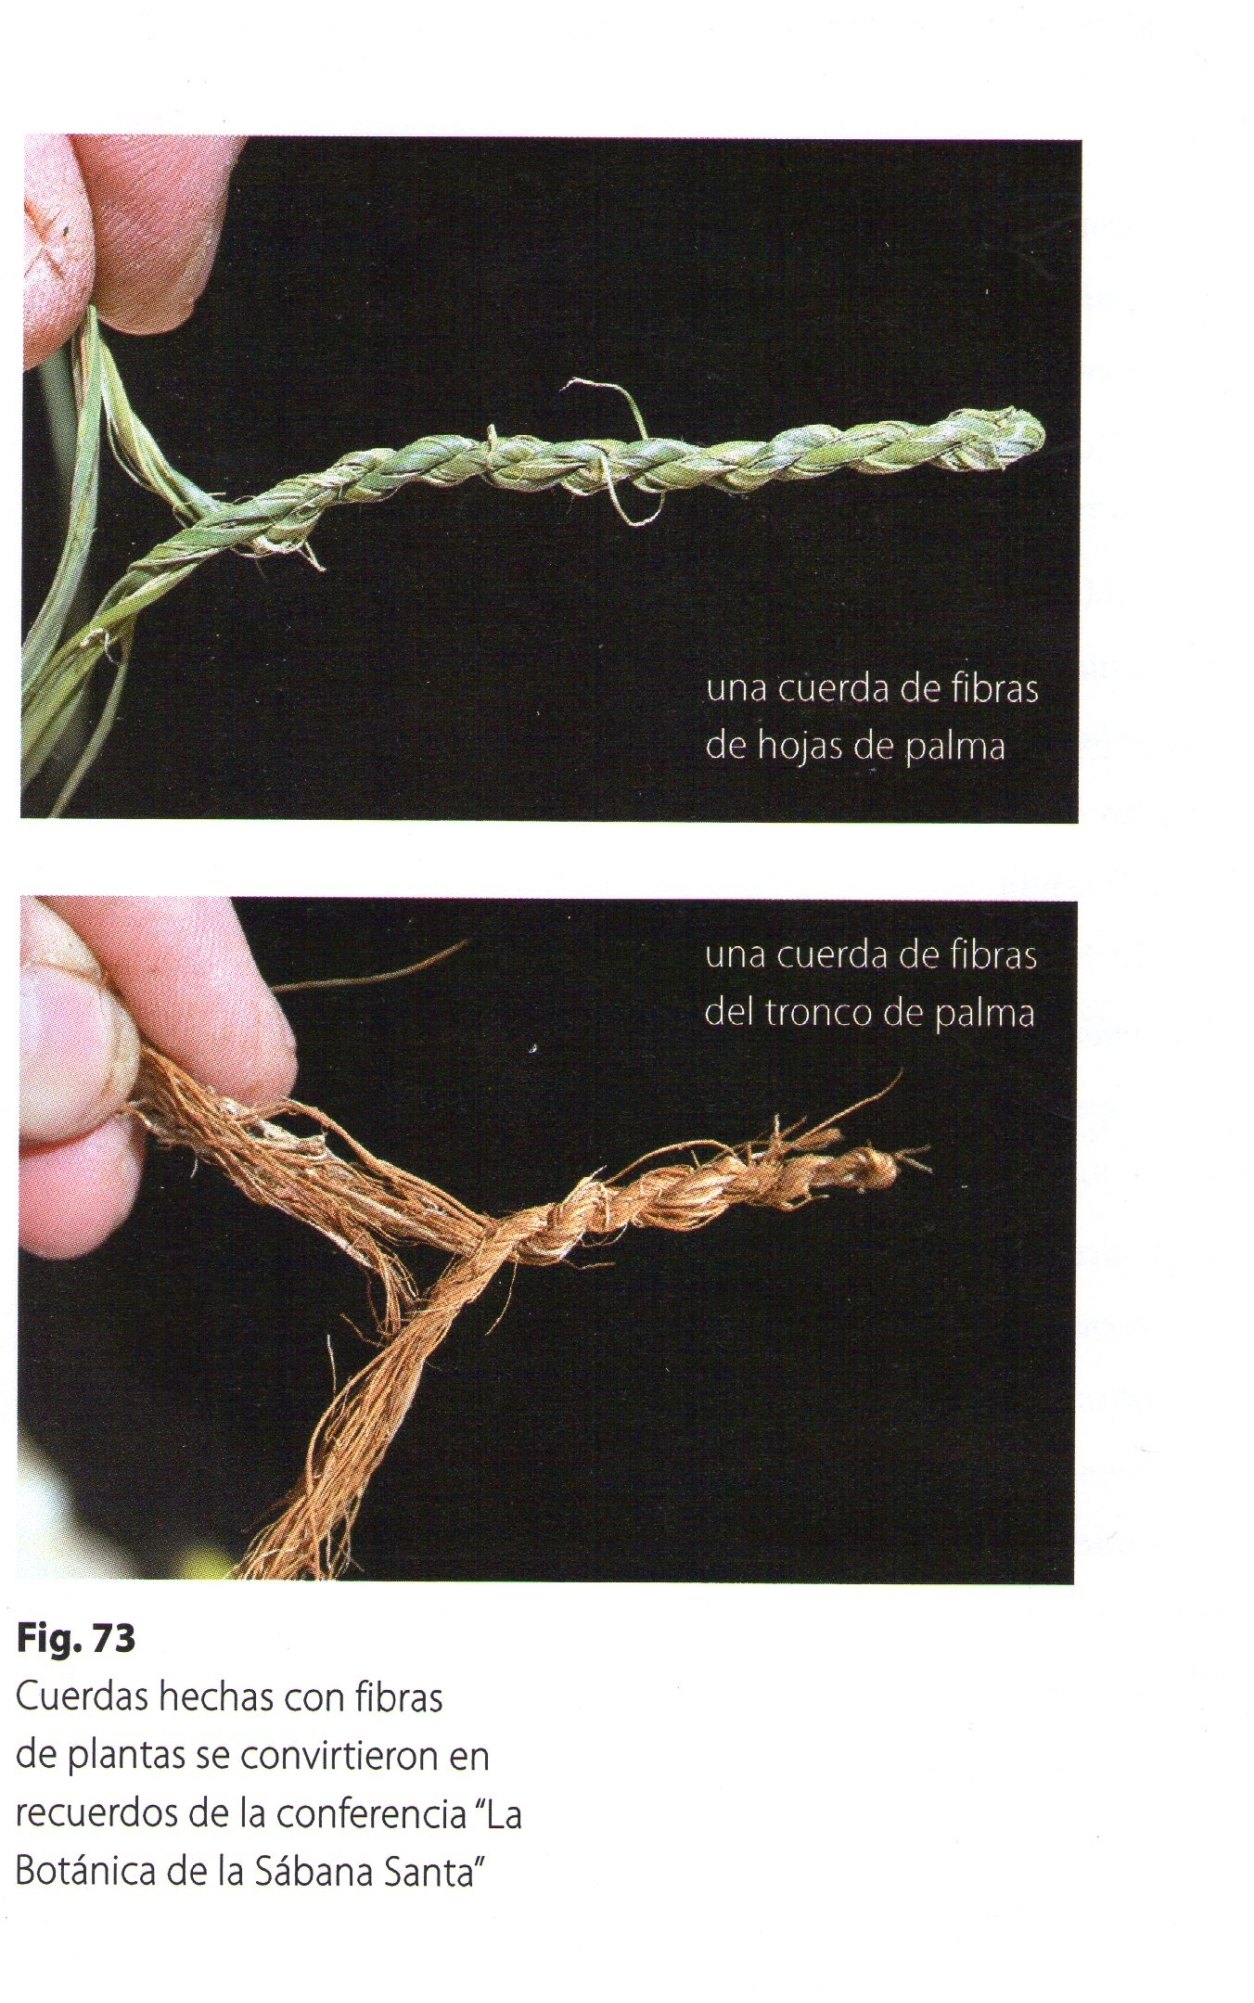 Photo 2 Making of cords/ropes